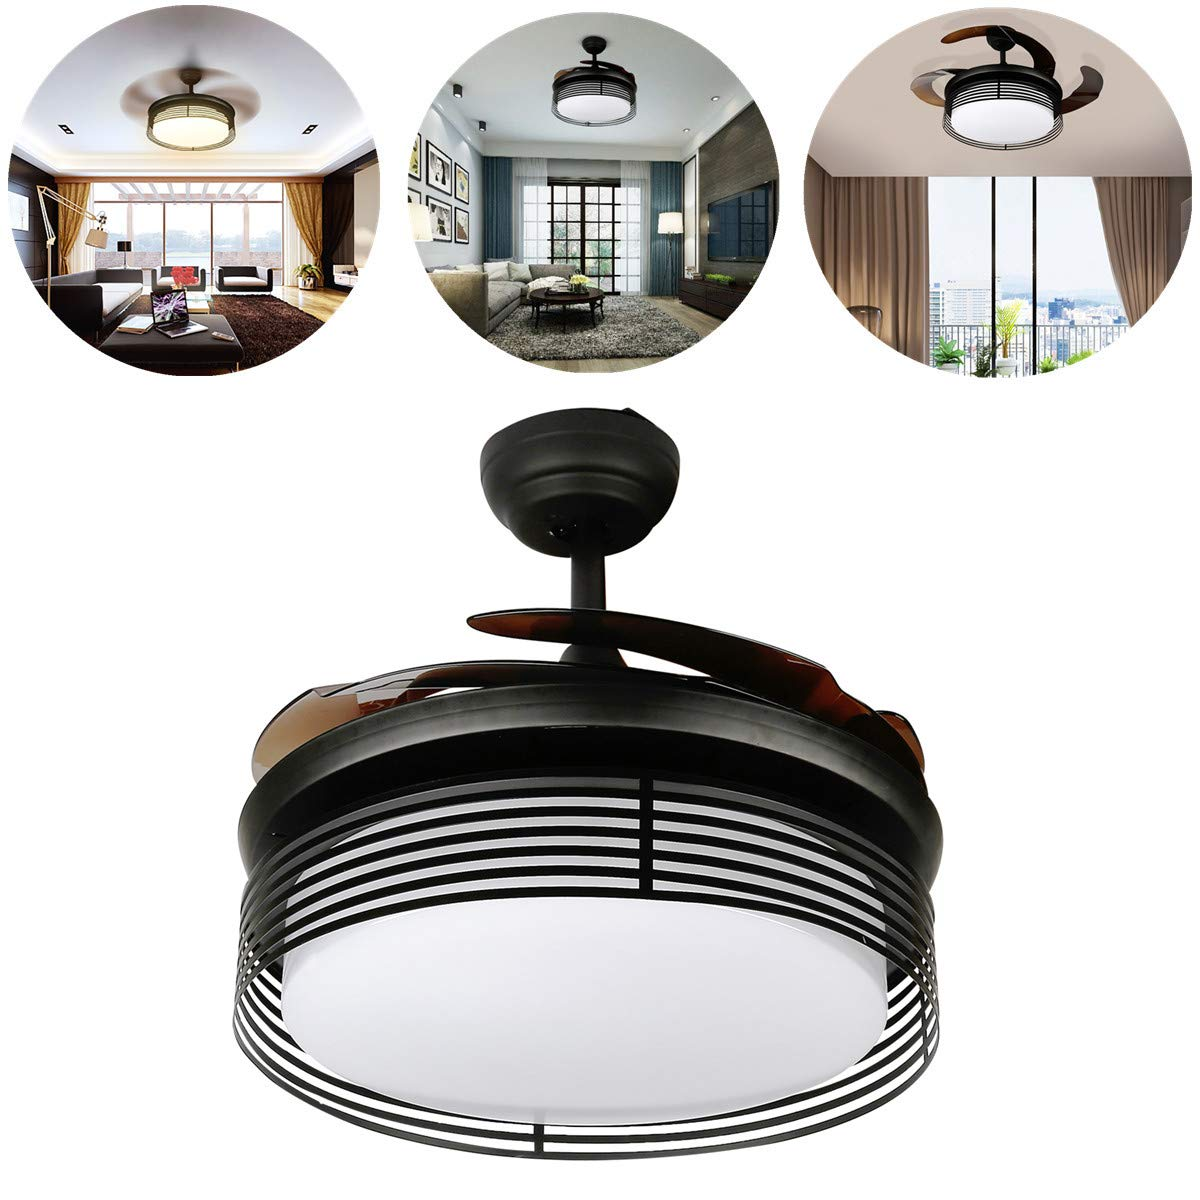 TC-Home 42 inch Ceiling Fan Light Kit Retractable 3 Color Changing Dimmable 3 Speeds w/remote